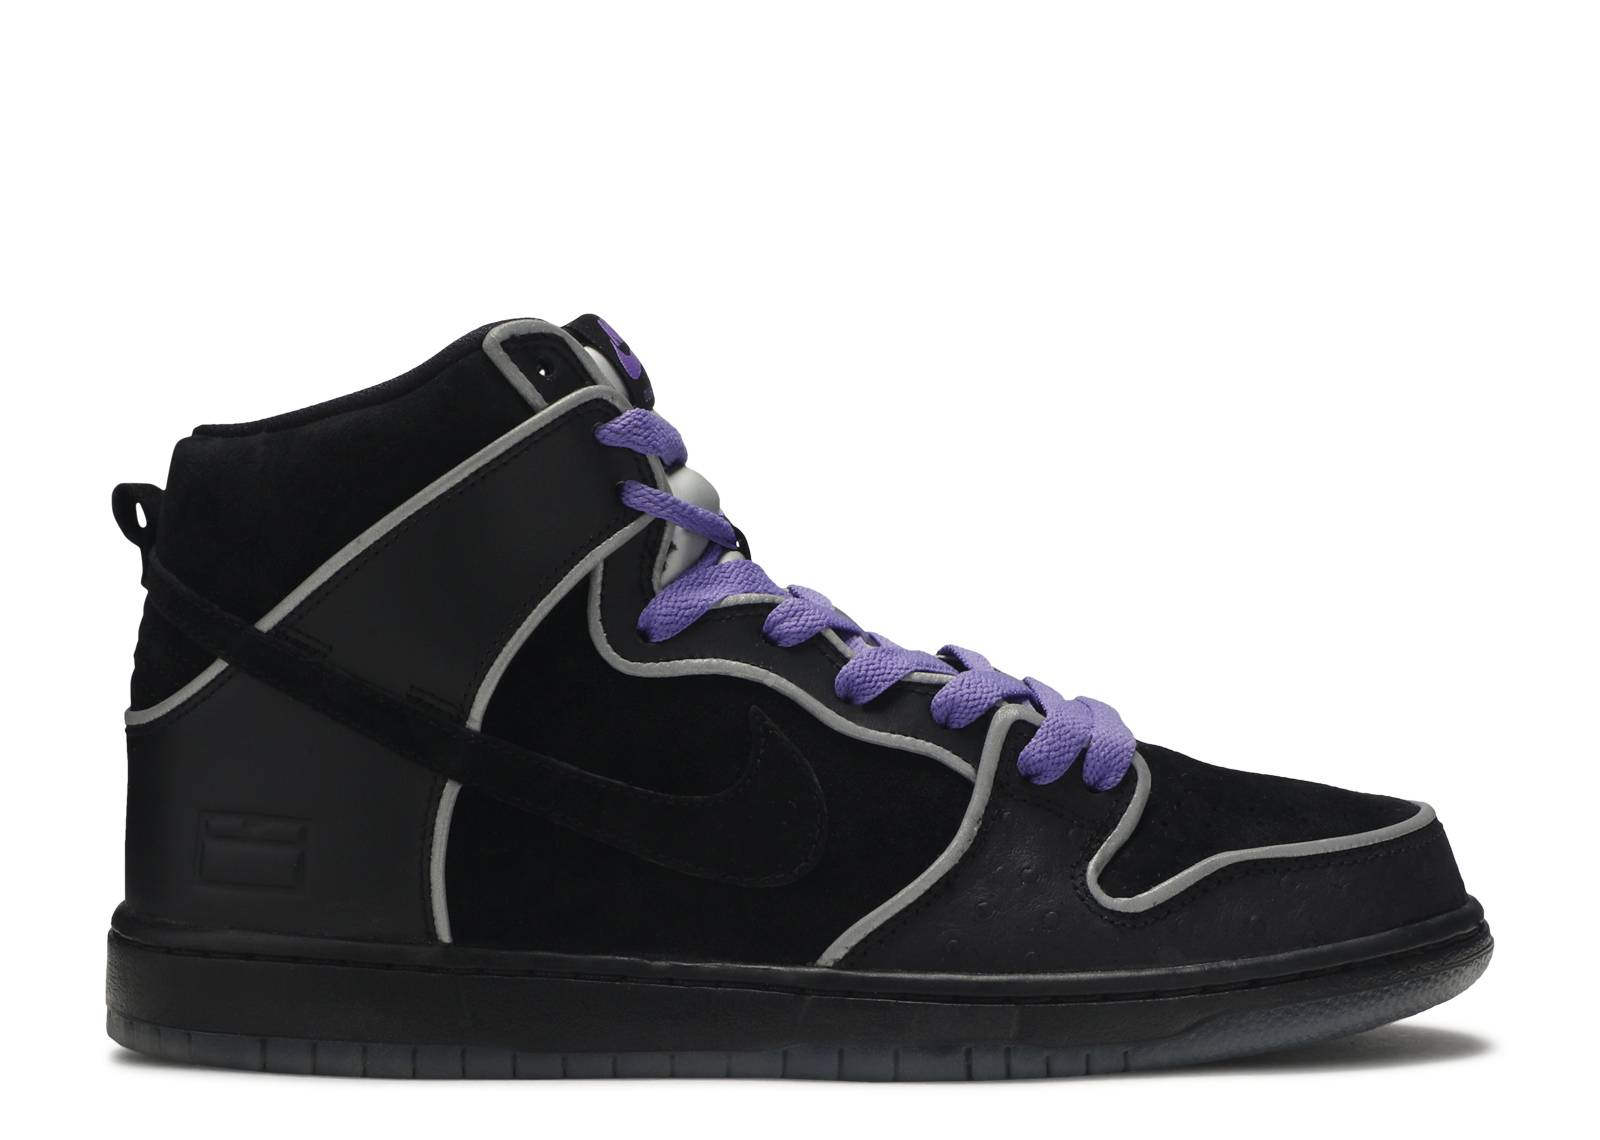 cheaper 28347 0150a dunk high elite sb